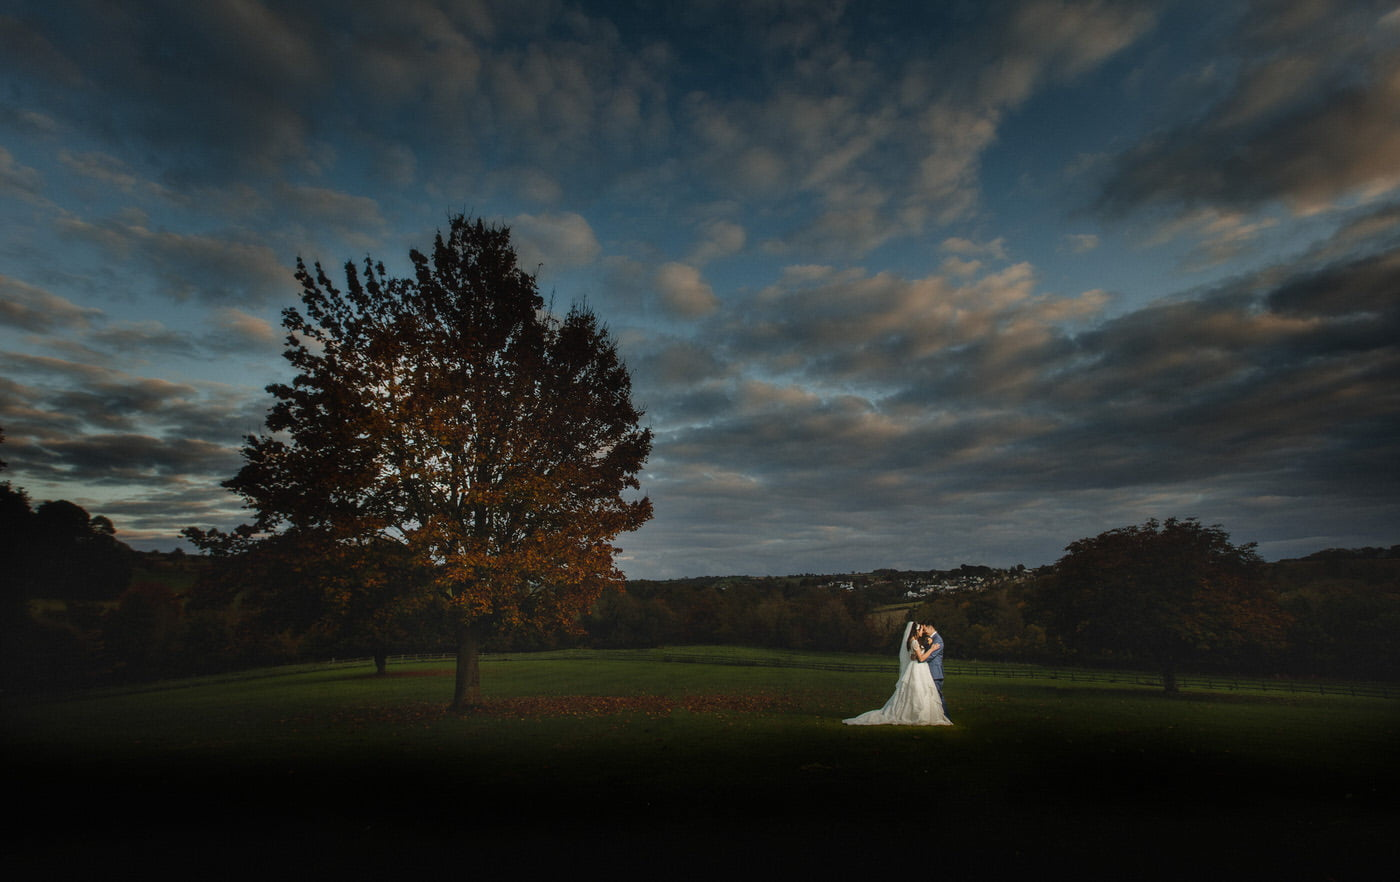 The bride and groom under an amazing sunset sky